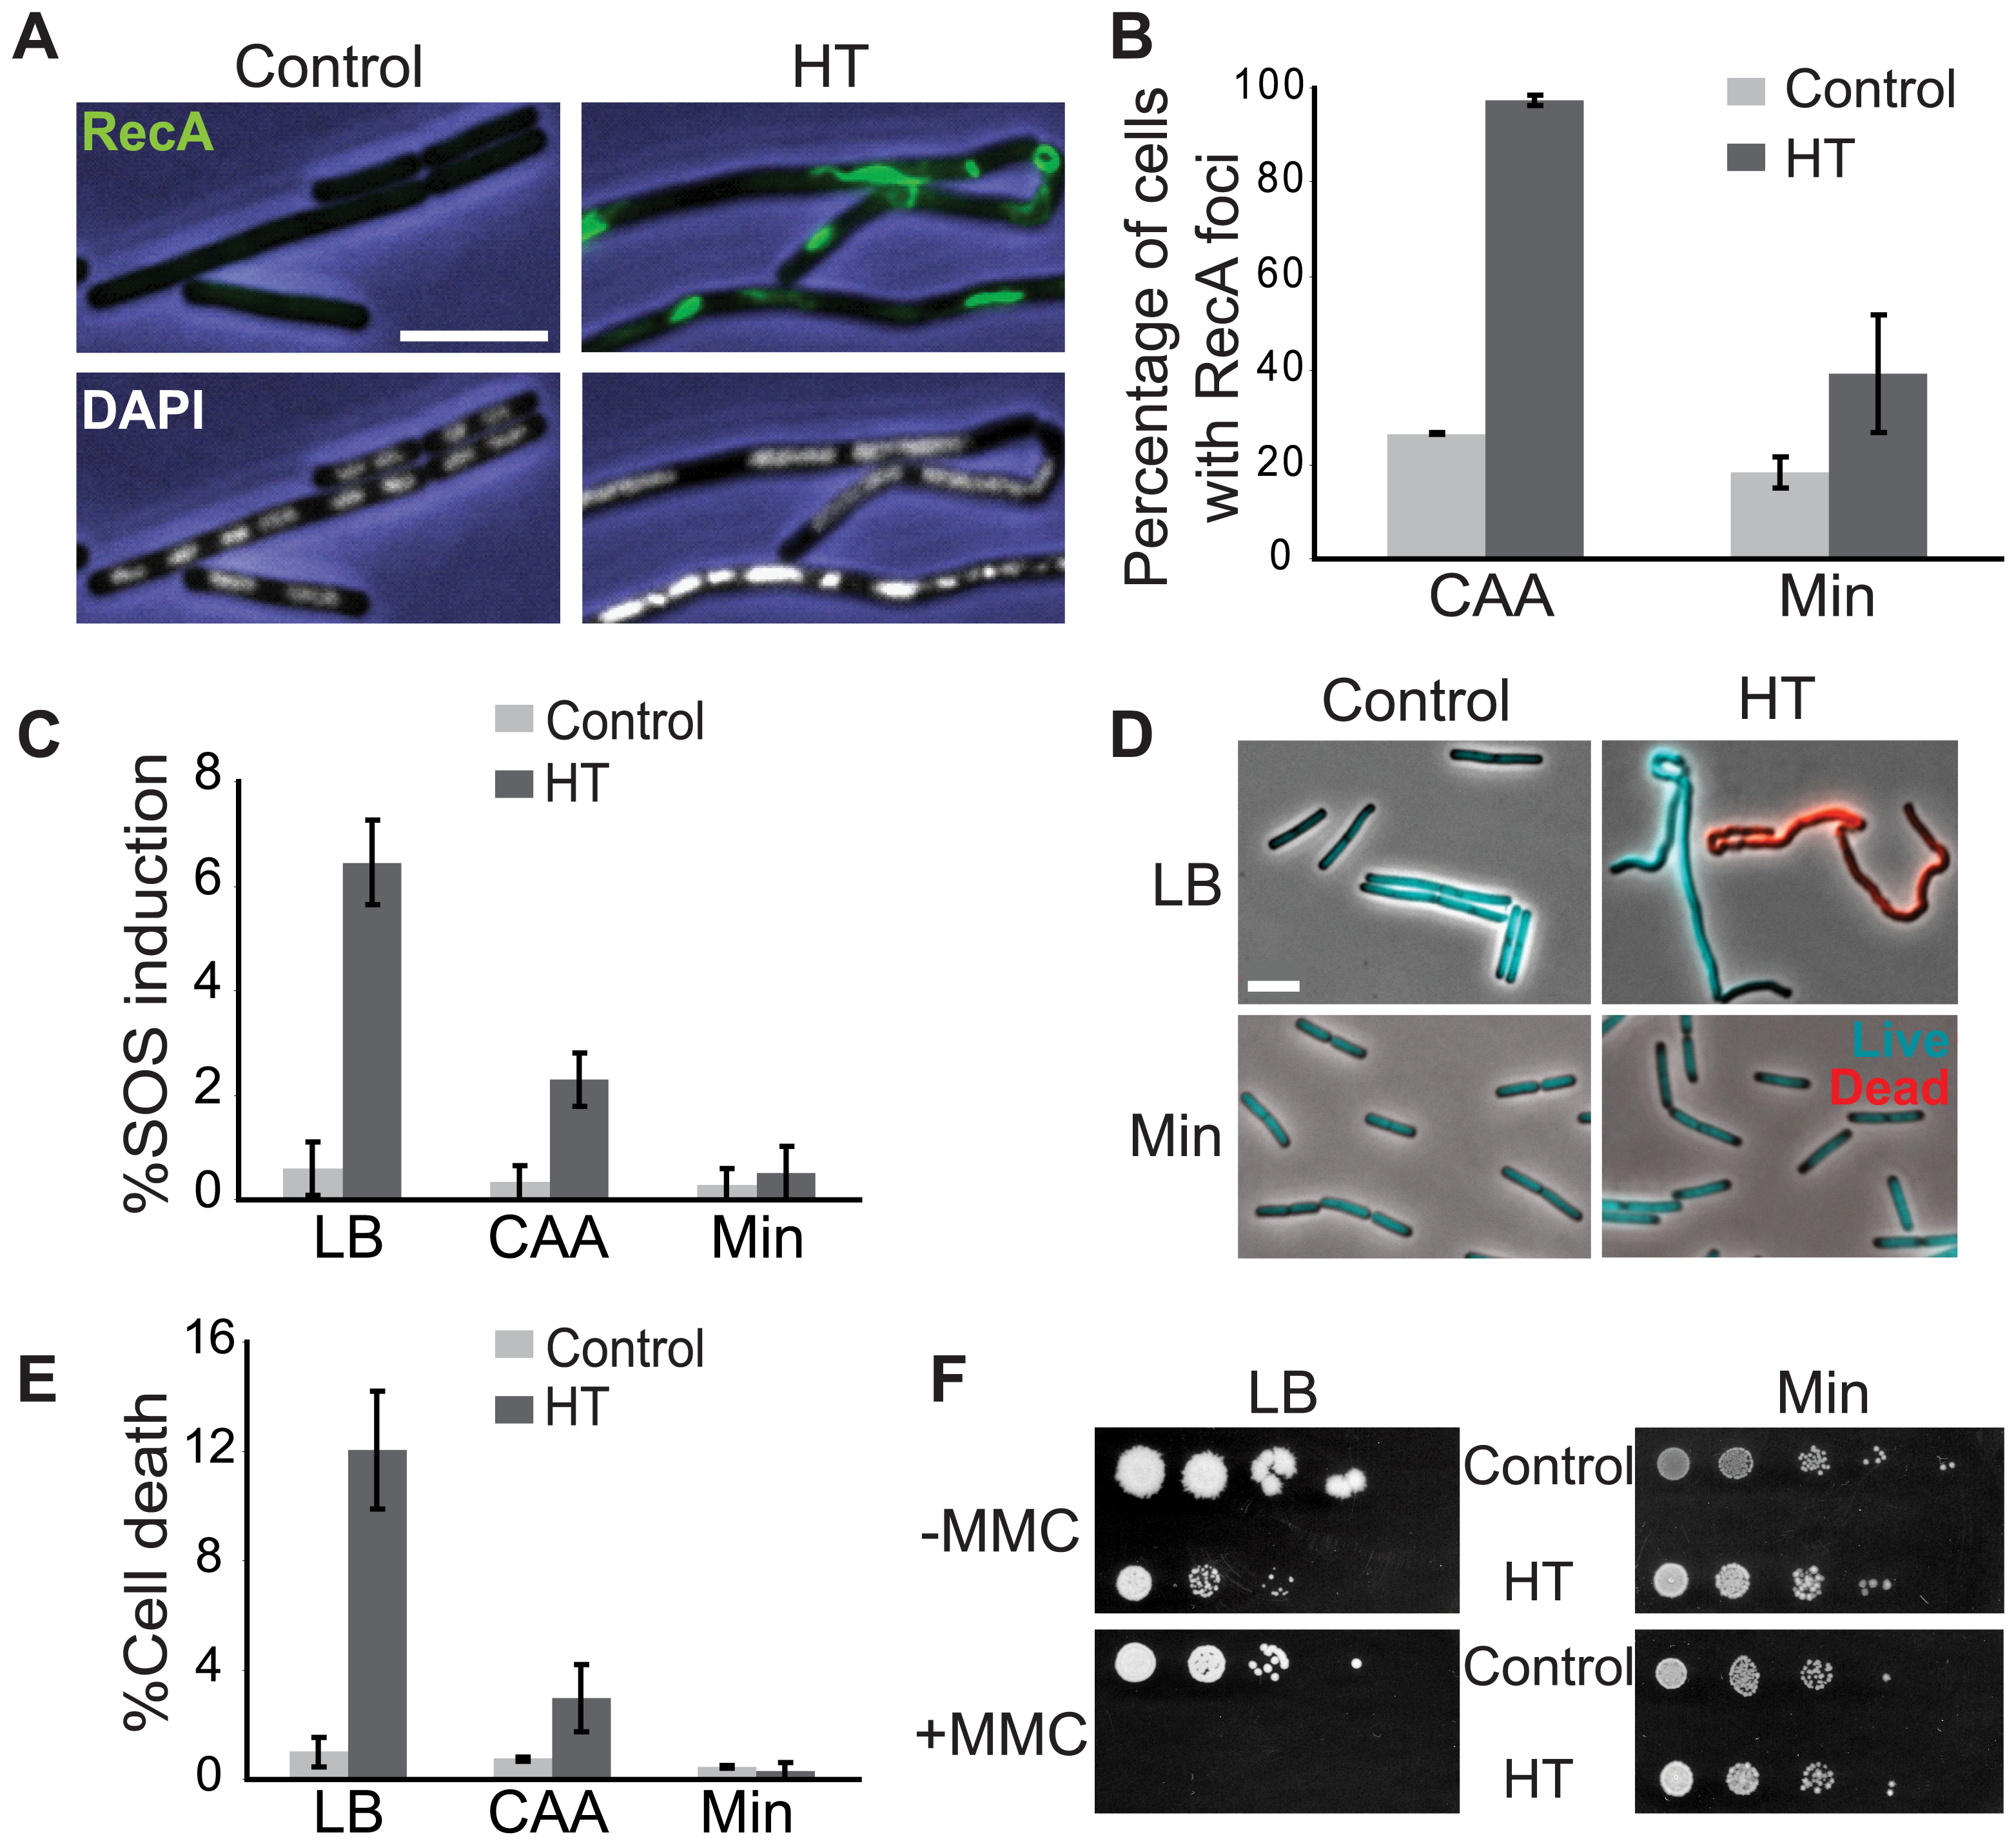 The HT strain exhibits disruption of DNA replication and loss of genome integrity.